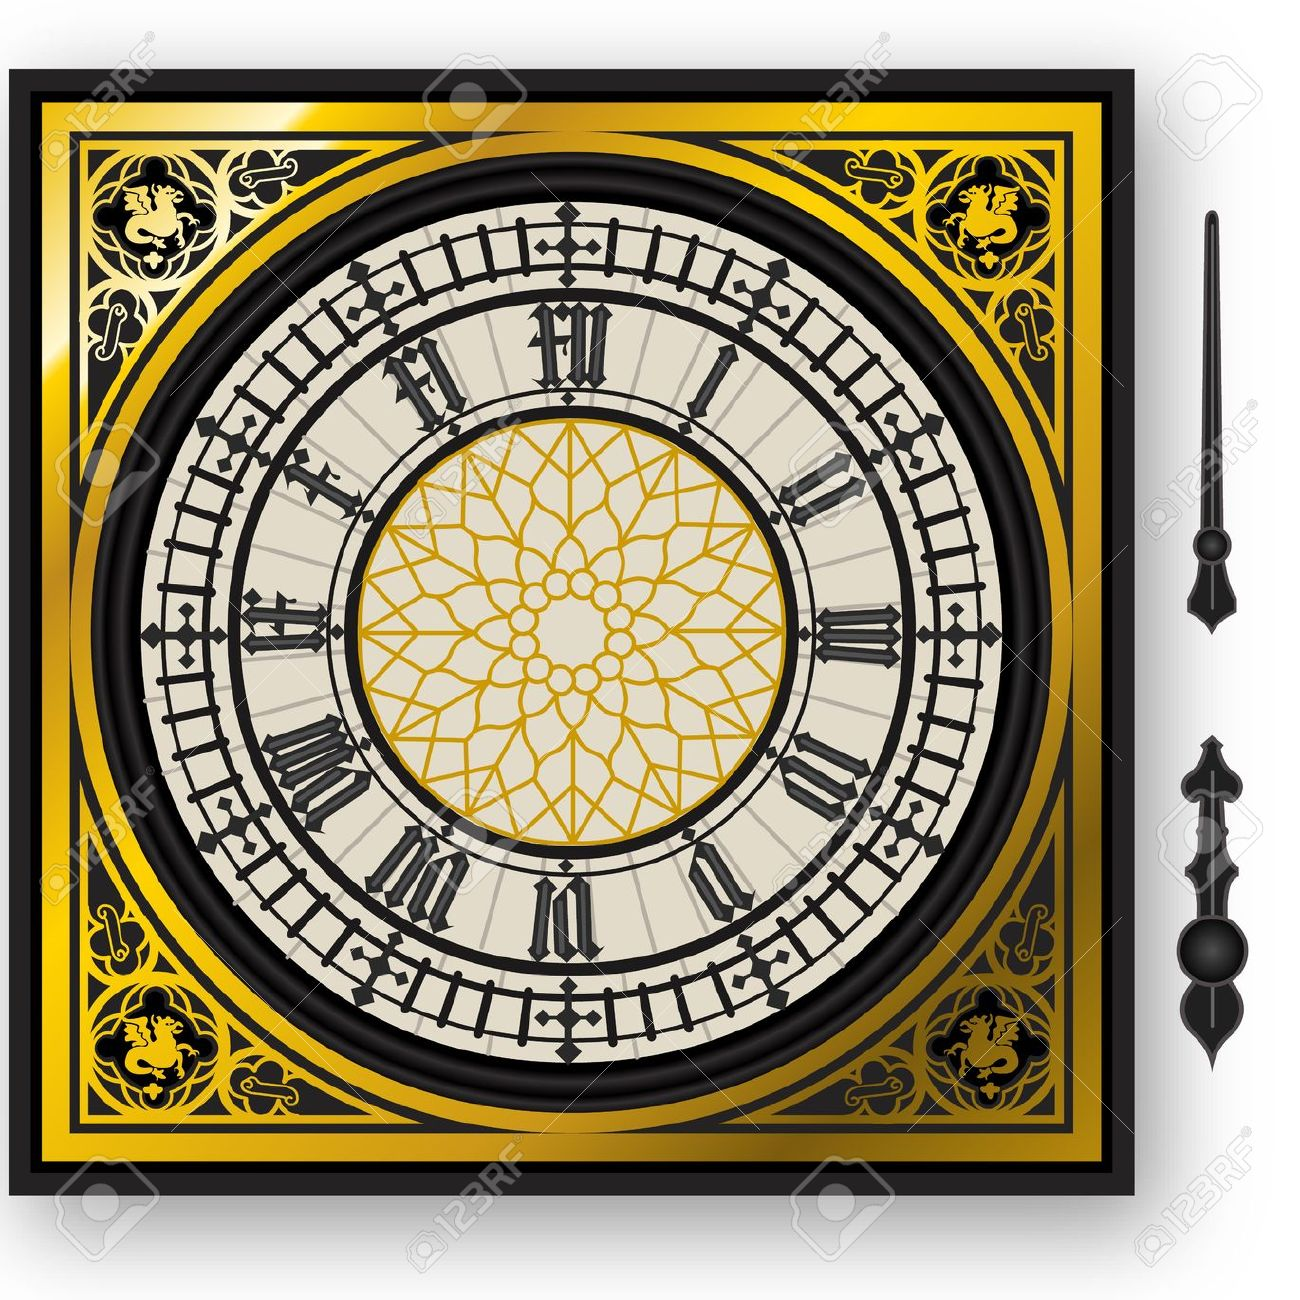 Illustration Of A Quadrant Of Victorian Clock With Lancets Royalty.